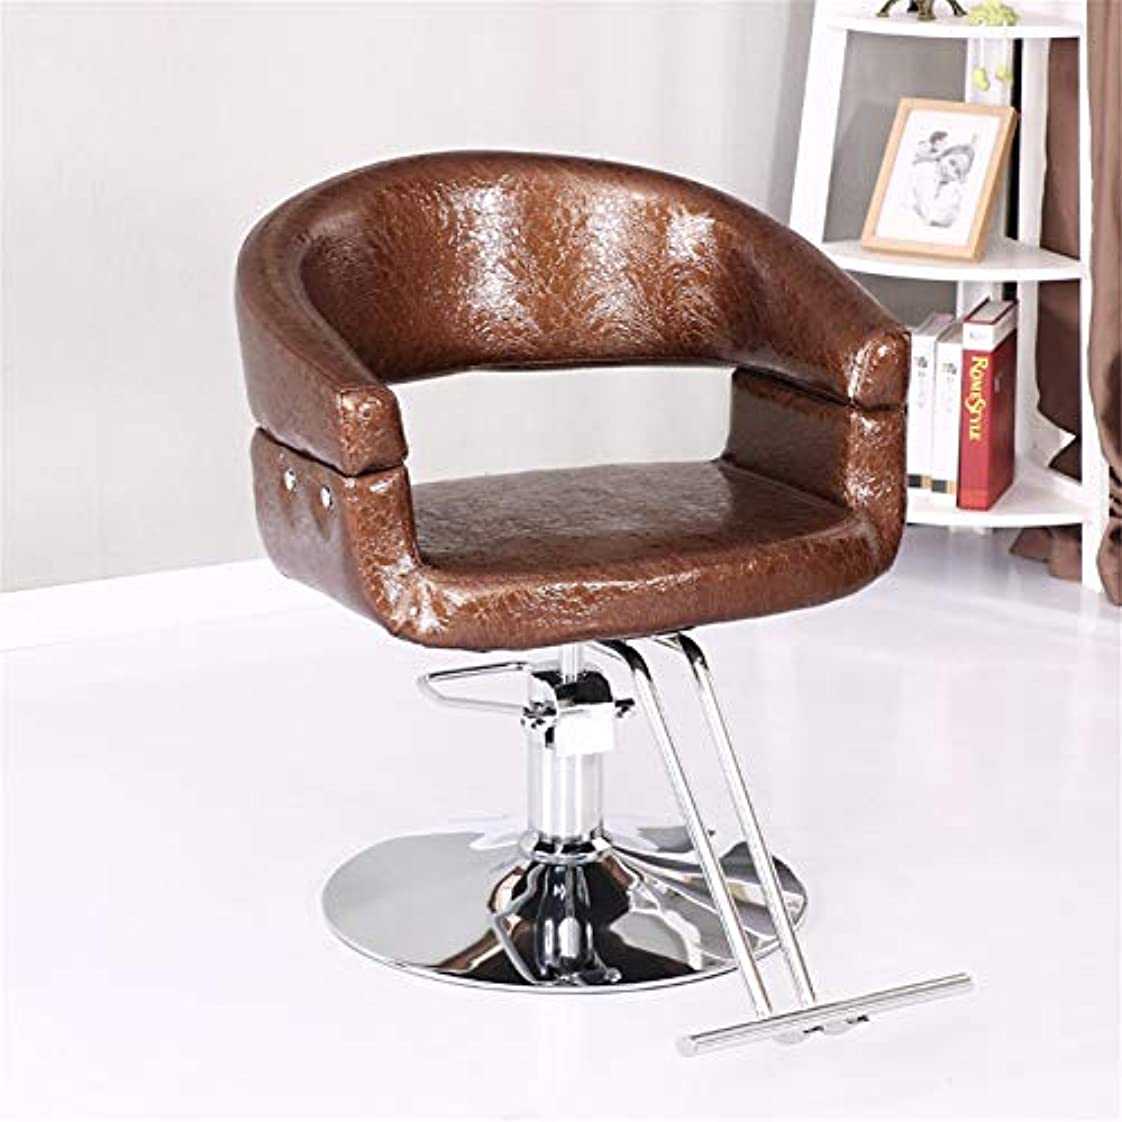 ささやき中で浸したSalon Chair Fashion Hydraulic Barber Chair Styling Beauty Salon Equipment Round Base Stable Comfort,Brown,B